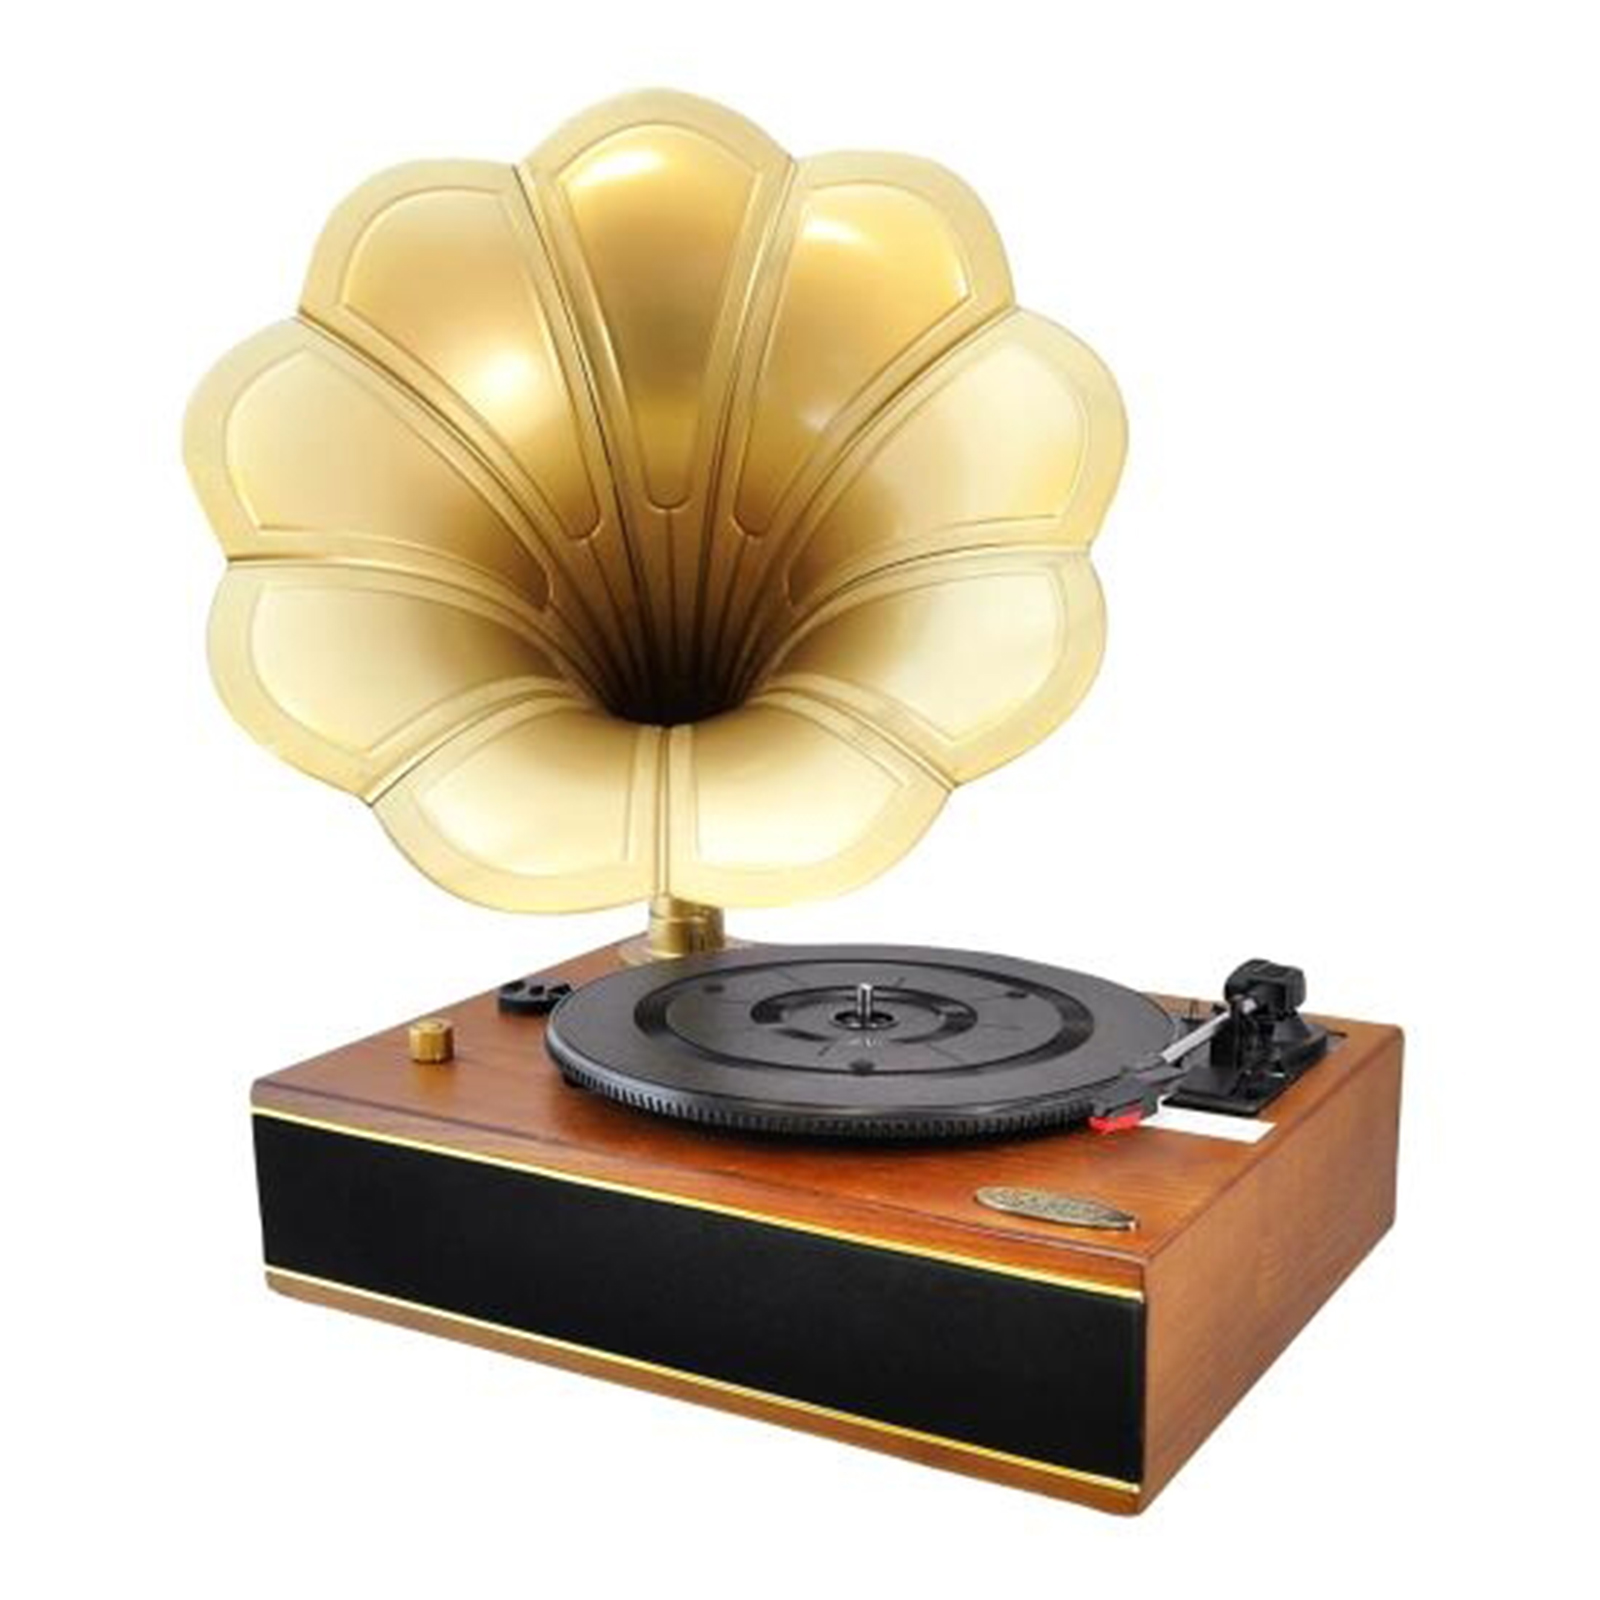 Vintage Classic Style BT Turntable Gramophone Phonograph Vinyl Record Player with Vinyl-to-MP3 Recording